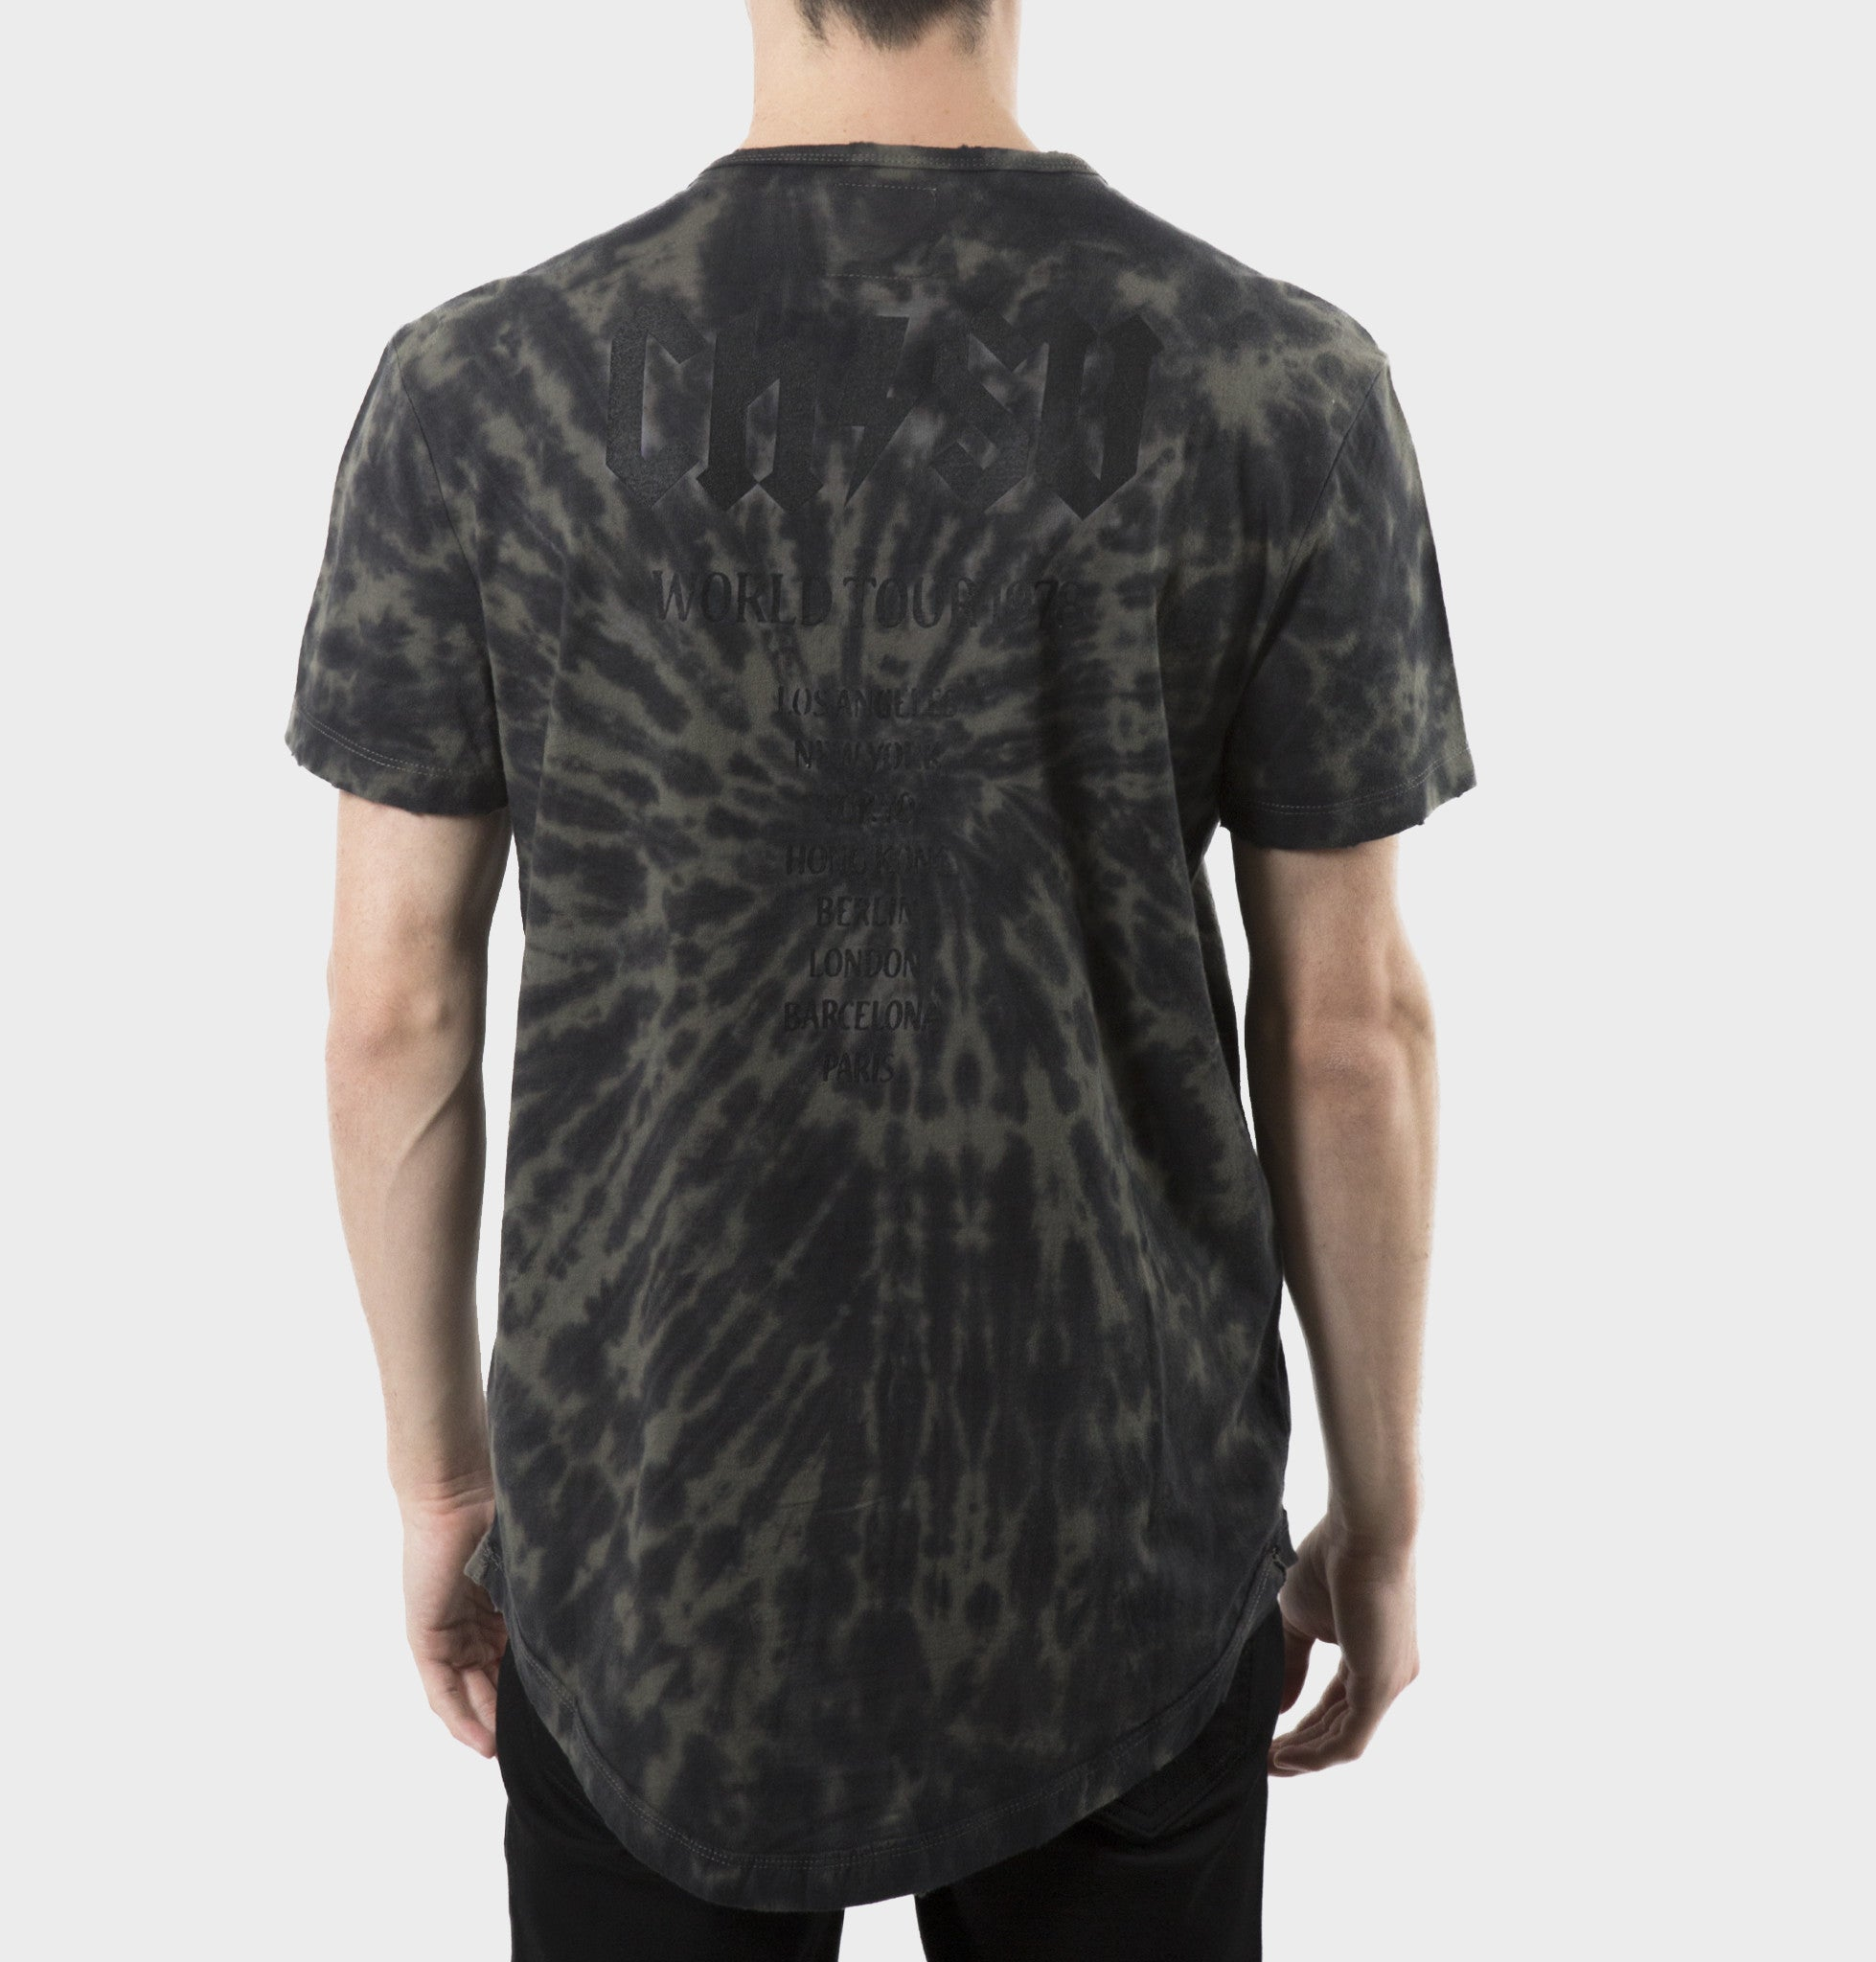 Clyde Black Tie-Dyed Tee